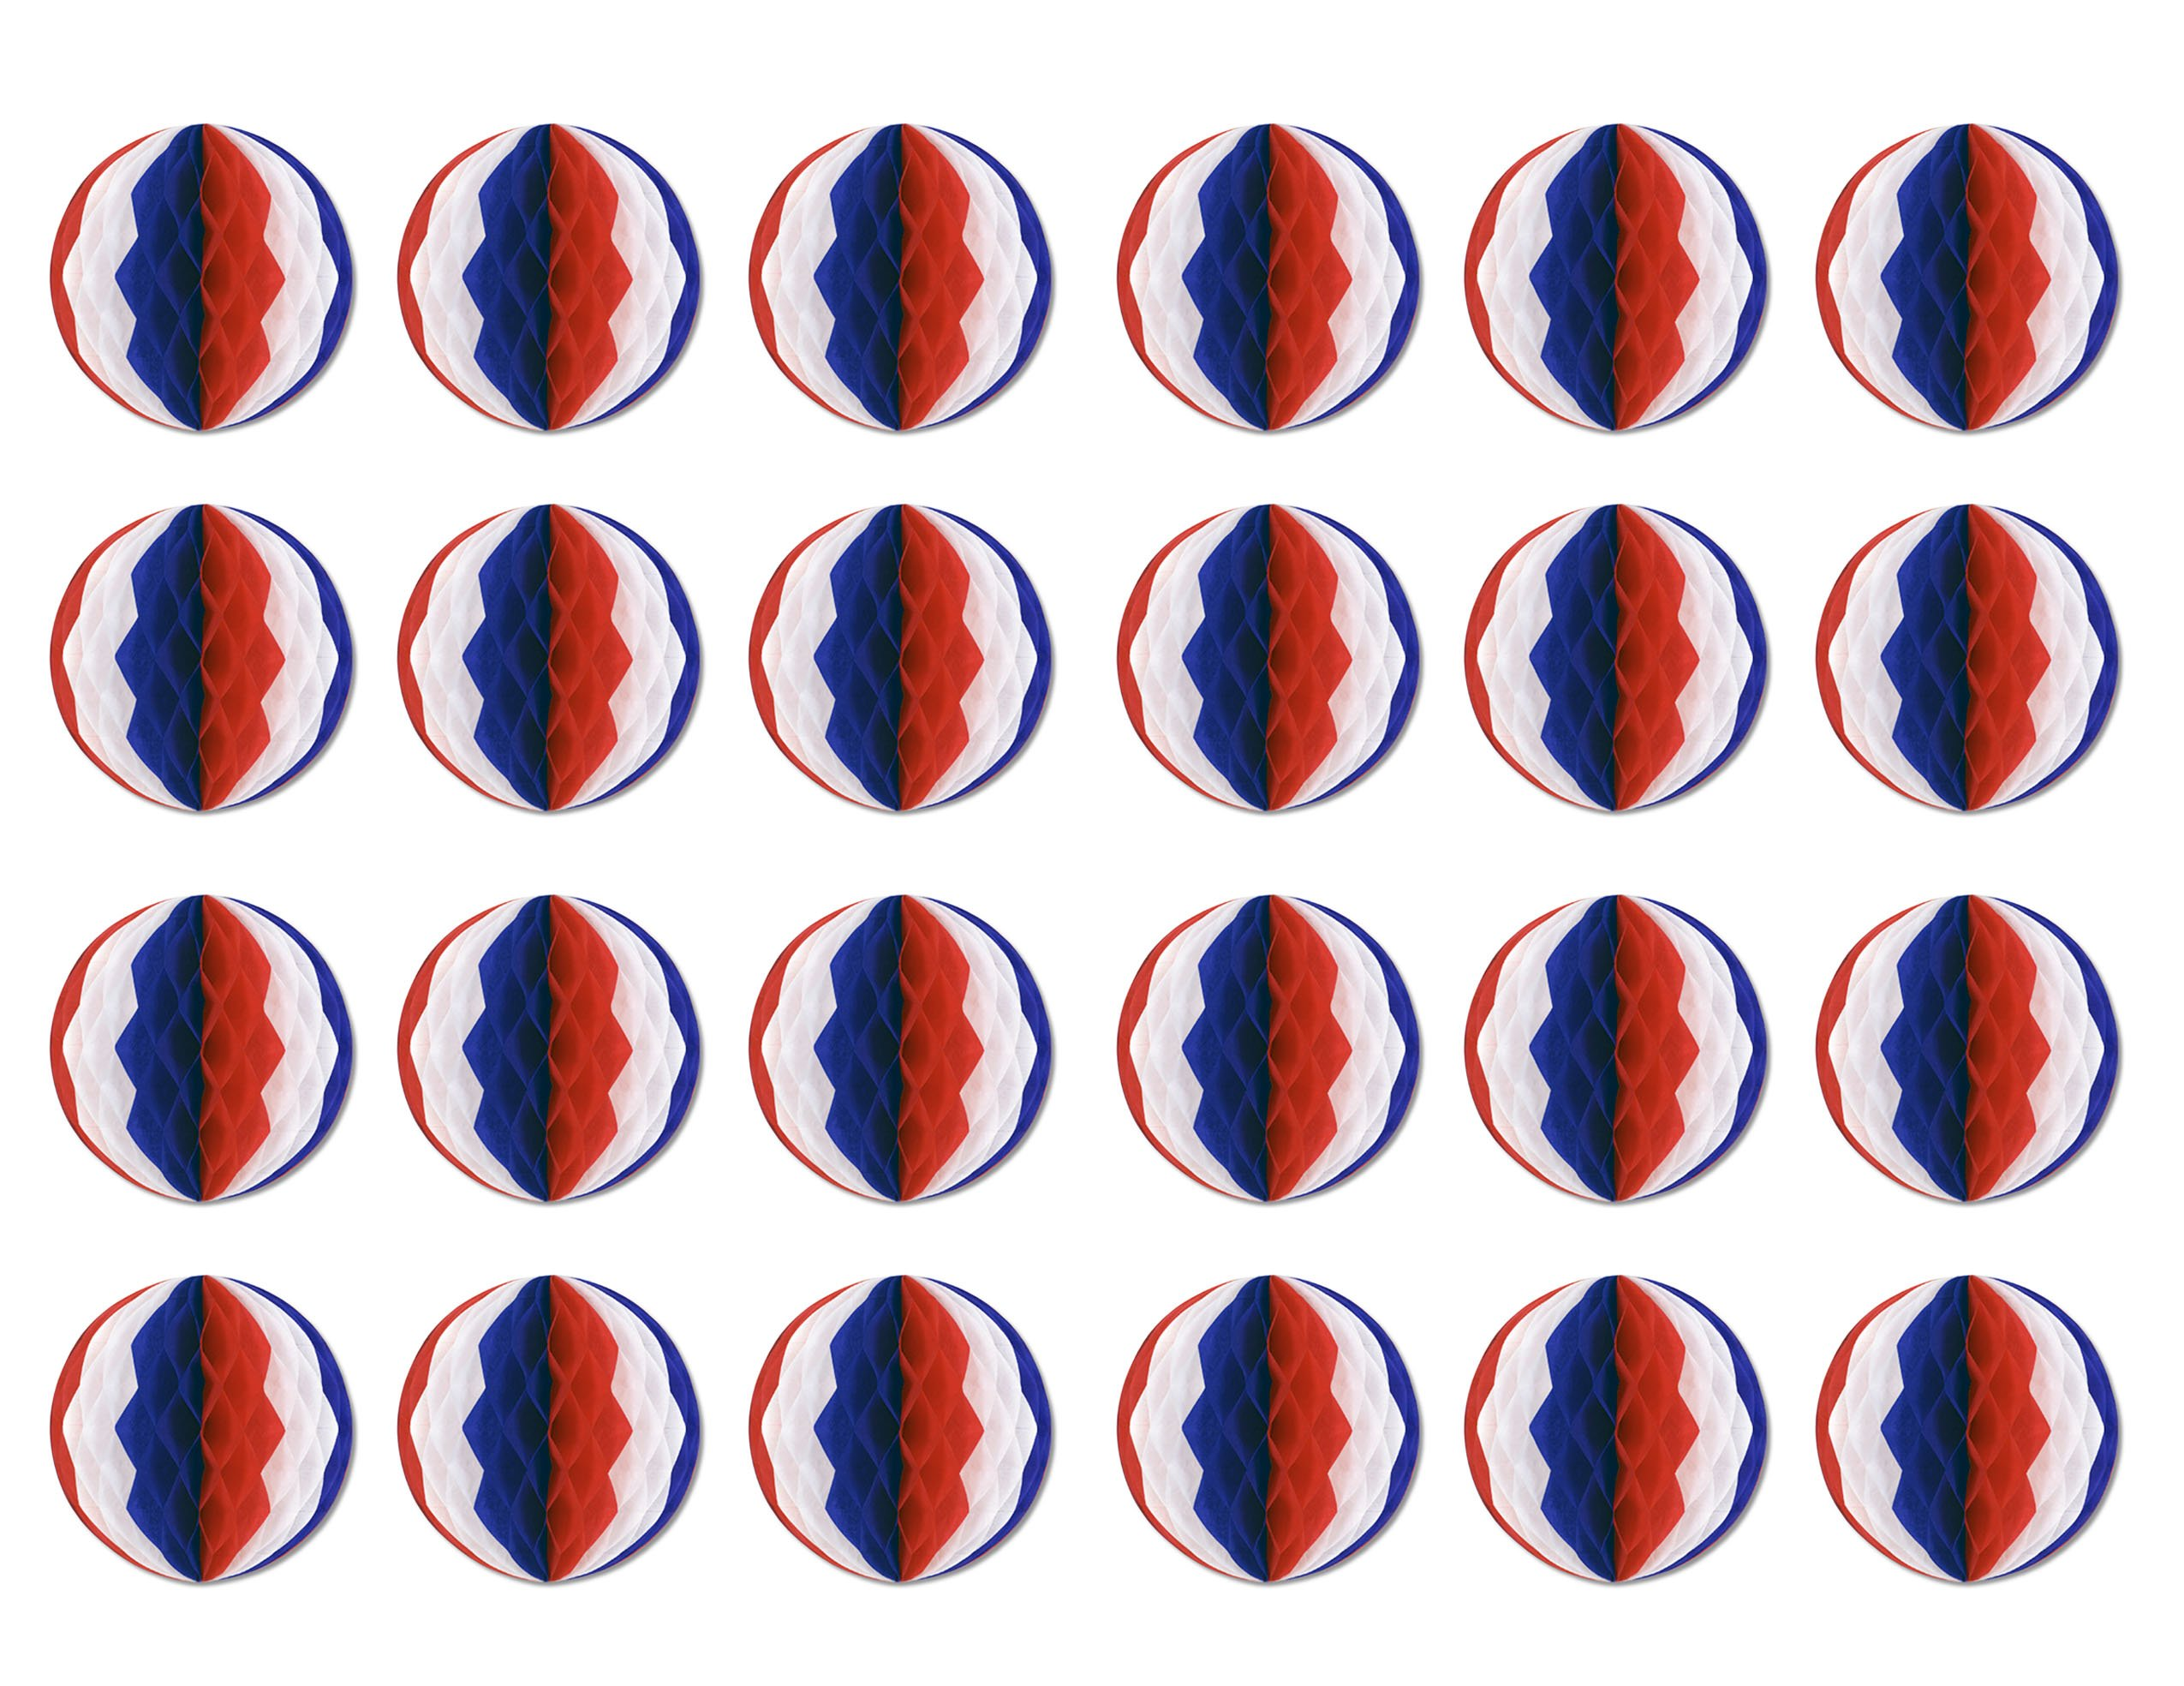 Beistle 55612-RWB 24-Pack Tissue Balls, 12-Inch, Red/White/Blue